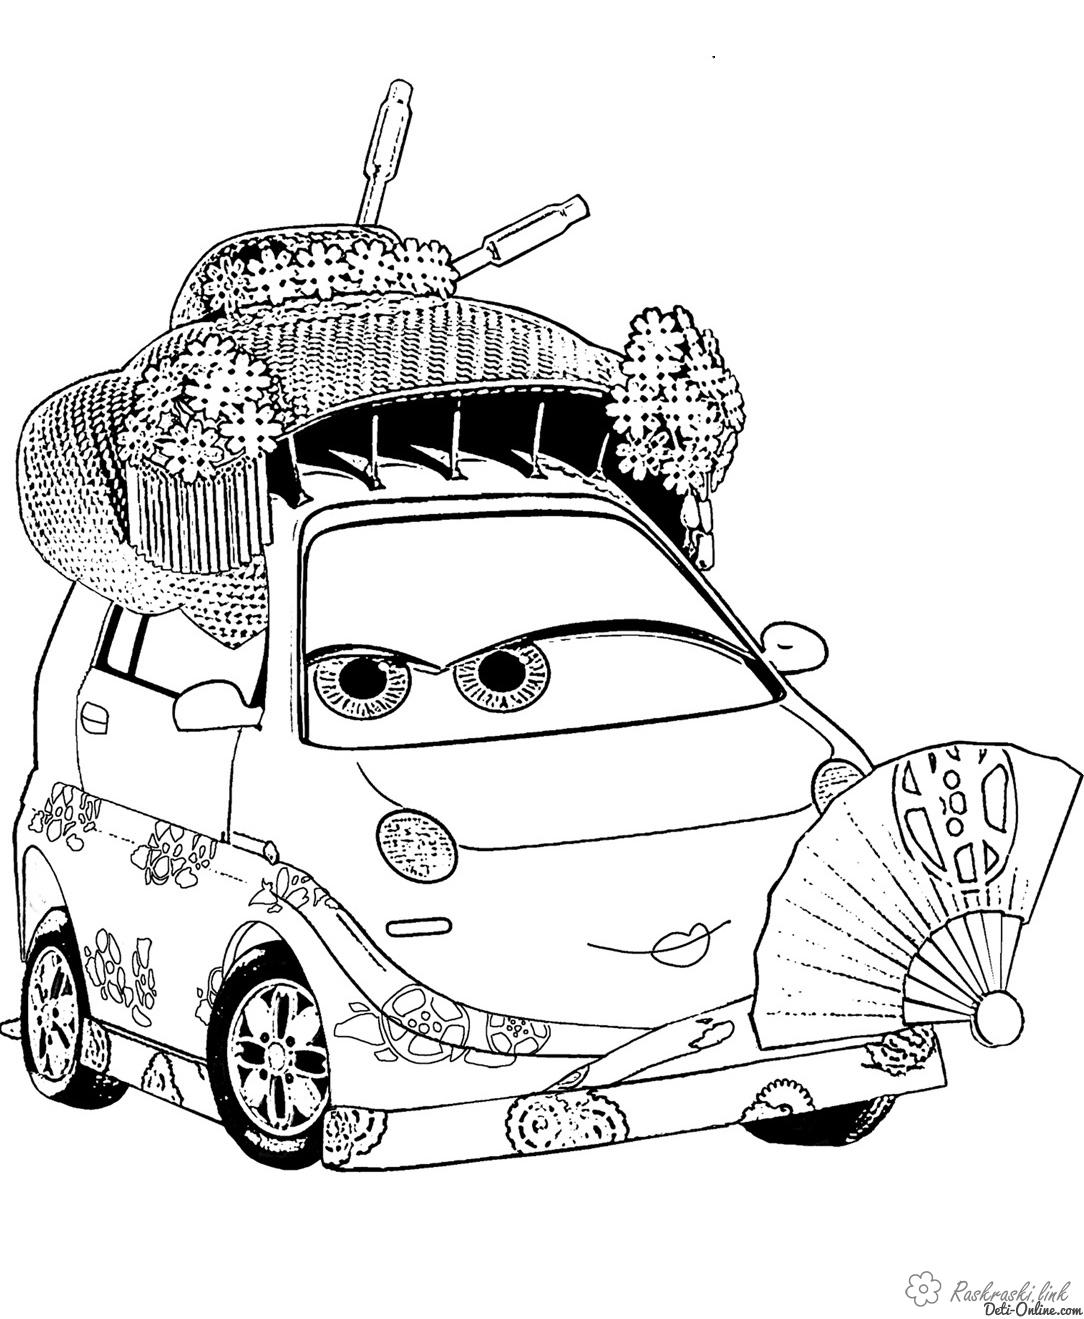 Coloring cars 2 coloring pages cartoons coloring pages Cars 2